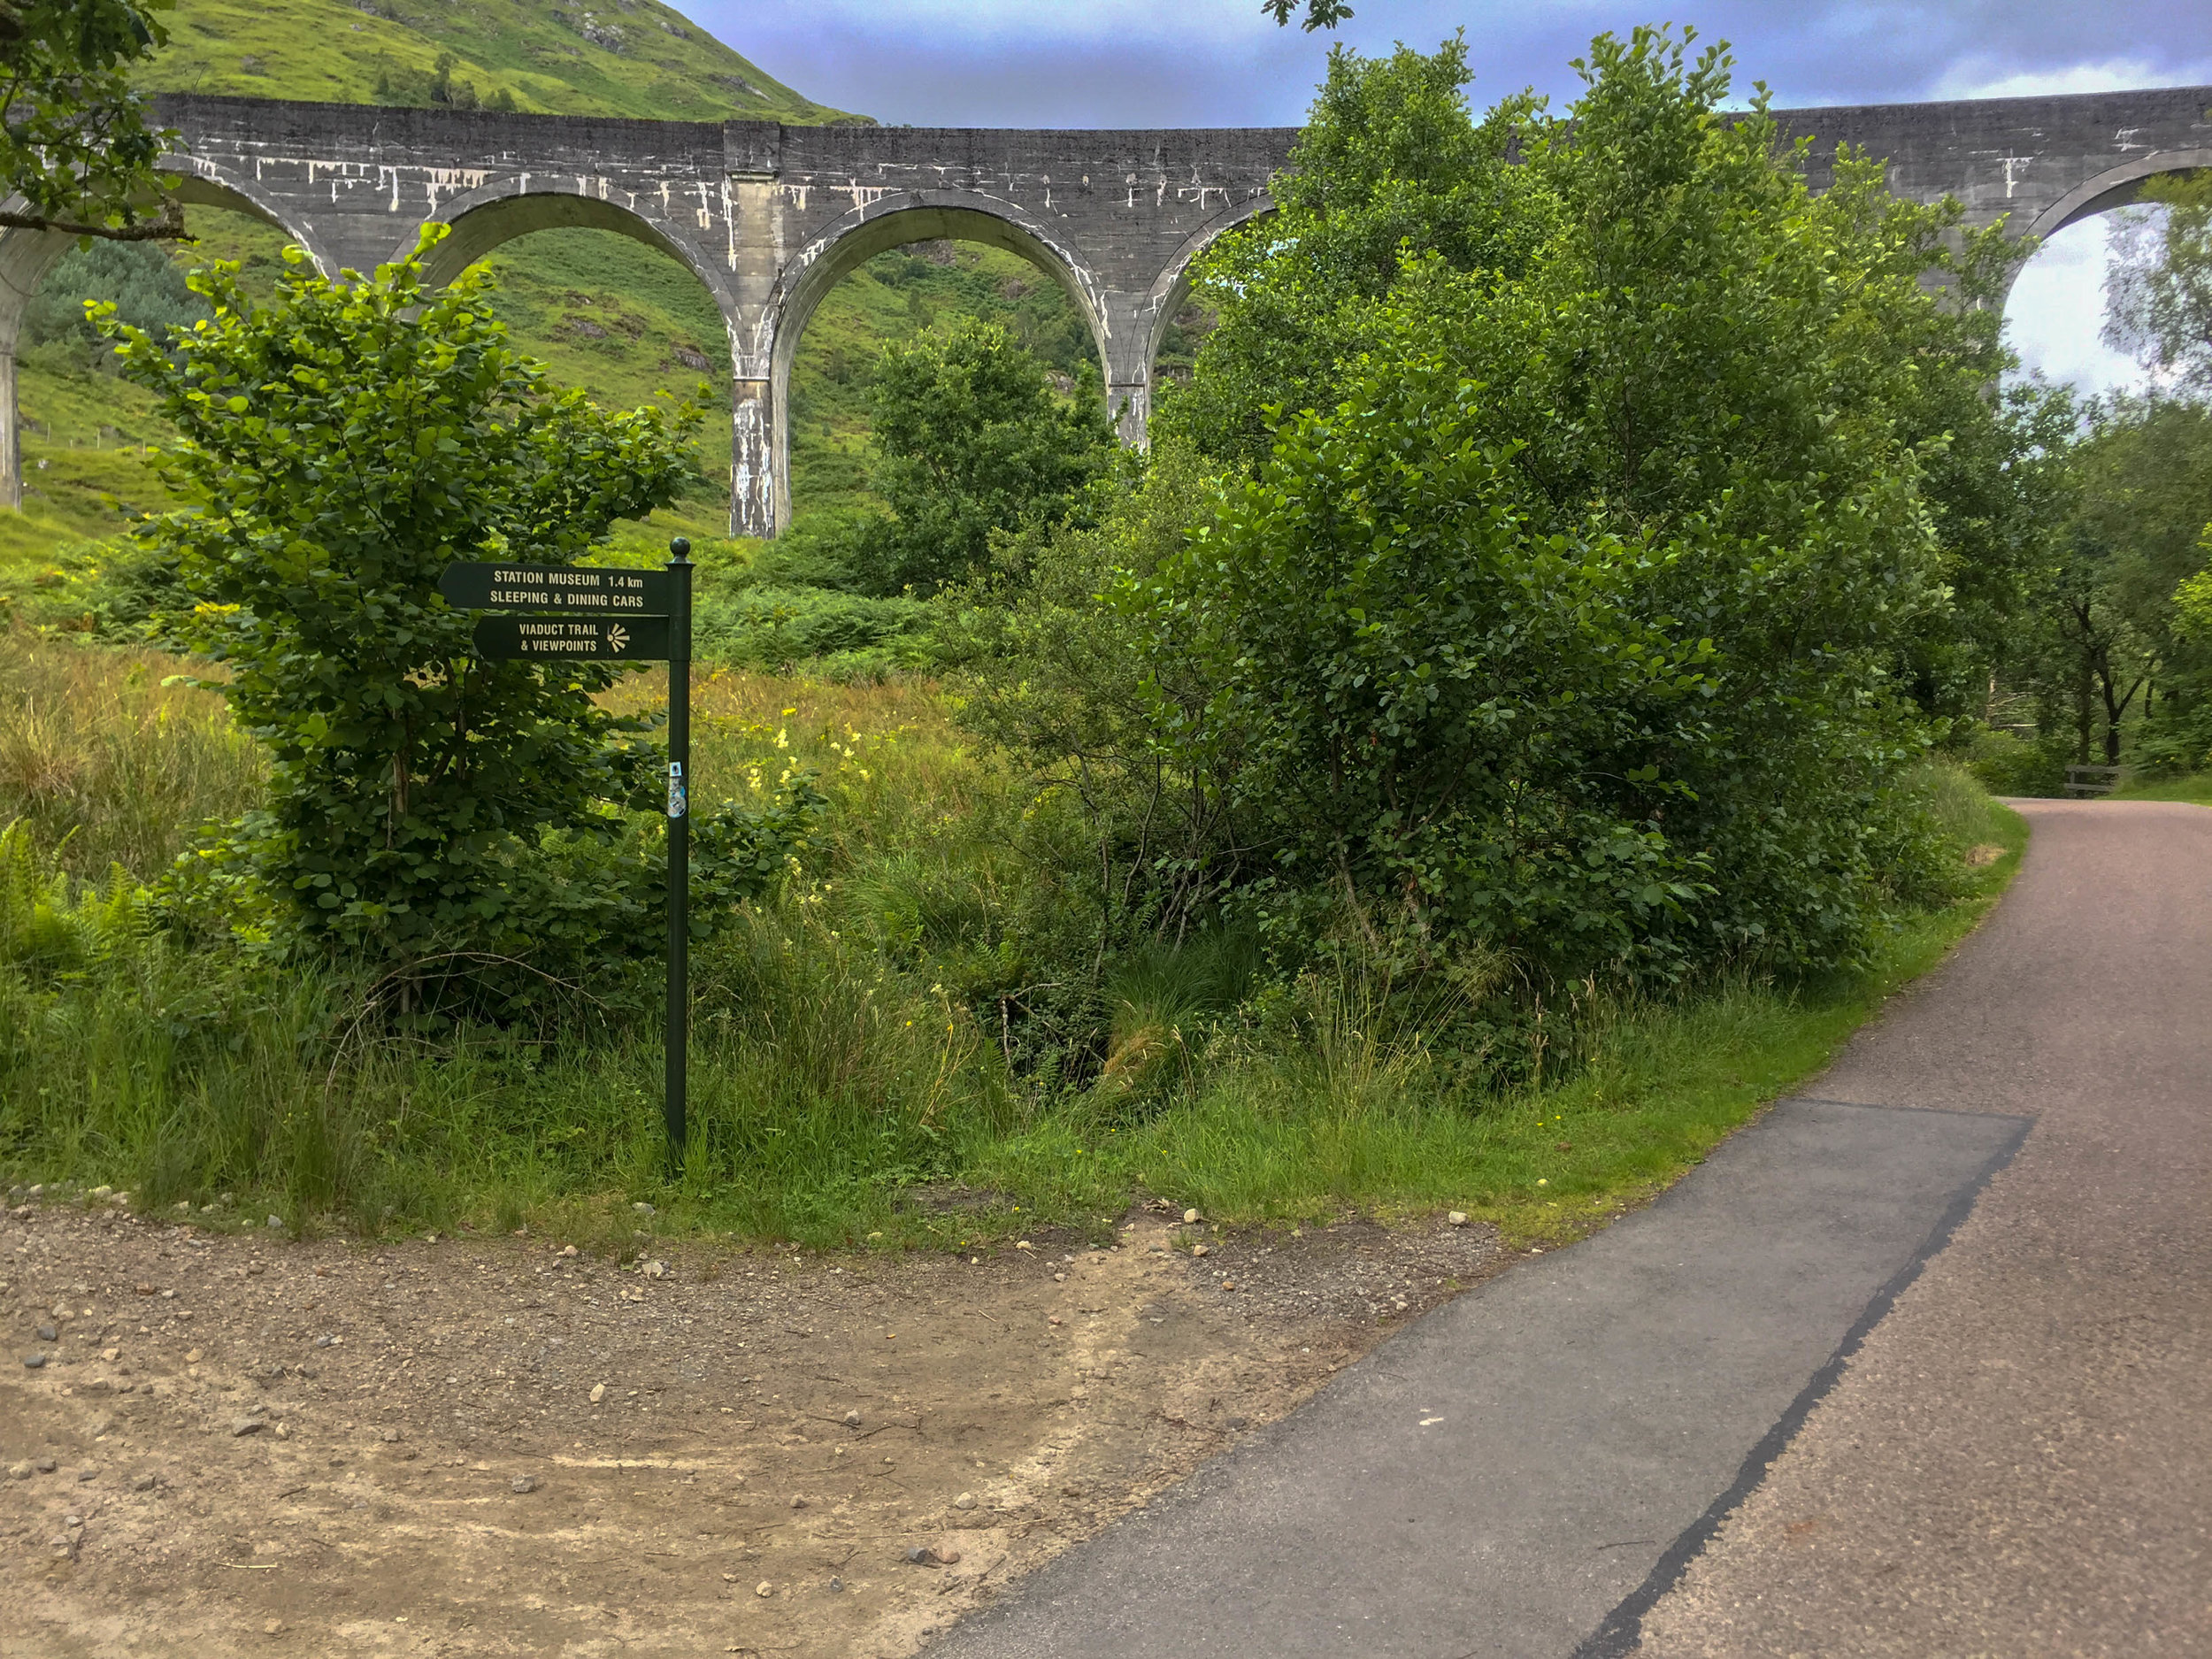 1. Continue on path towards the viaduct